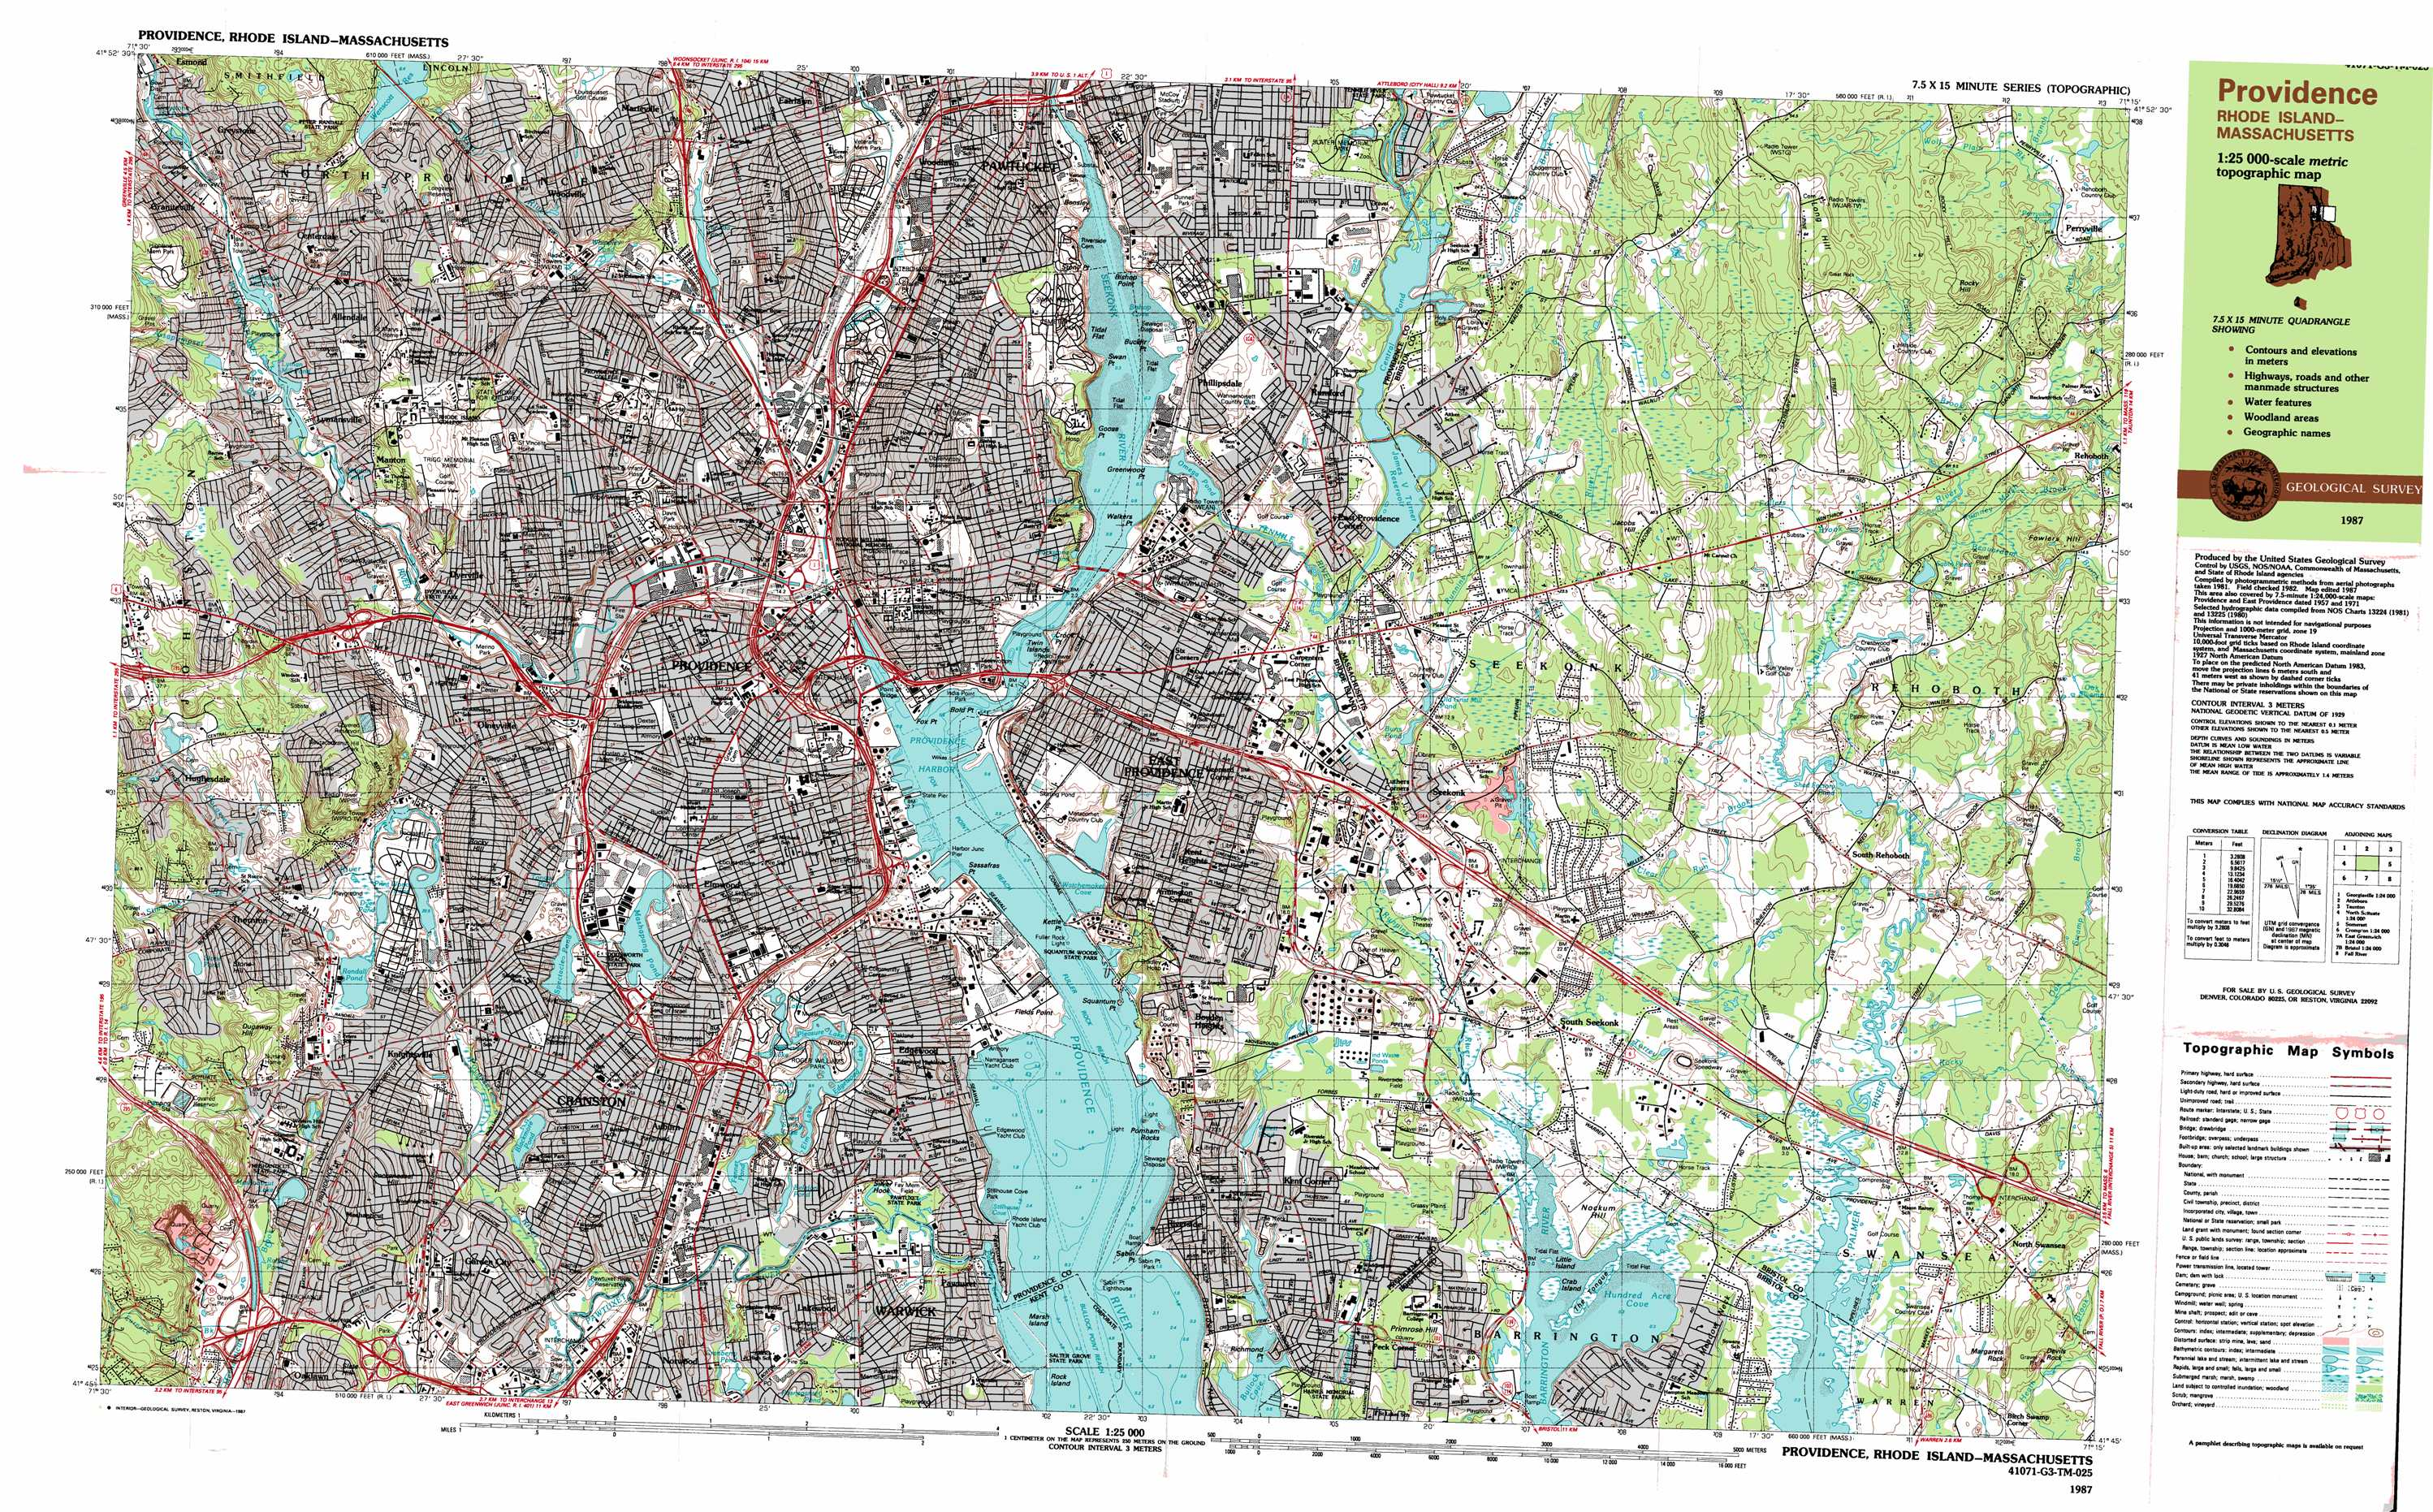 East Providence topographic map, MA, RI - USGS Topo Quad 41071g3